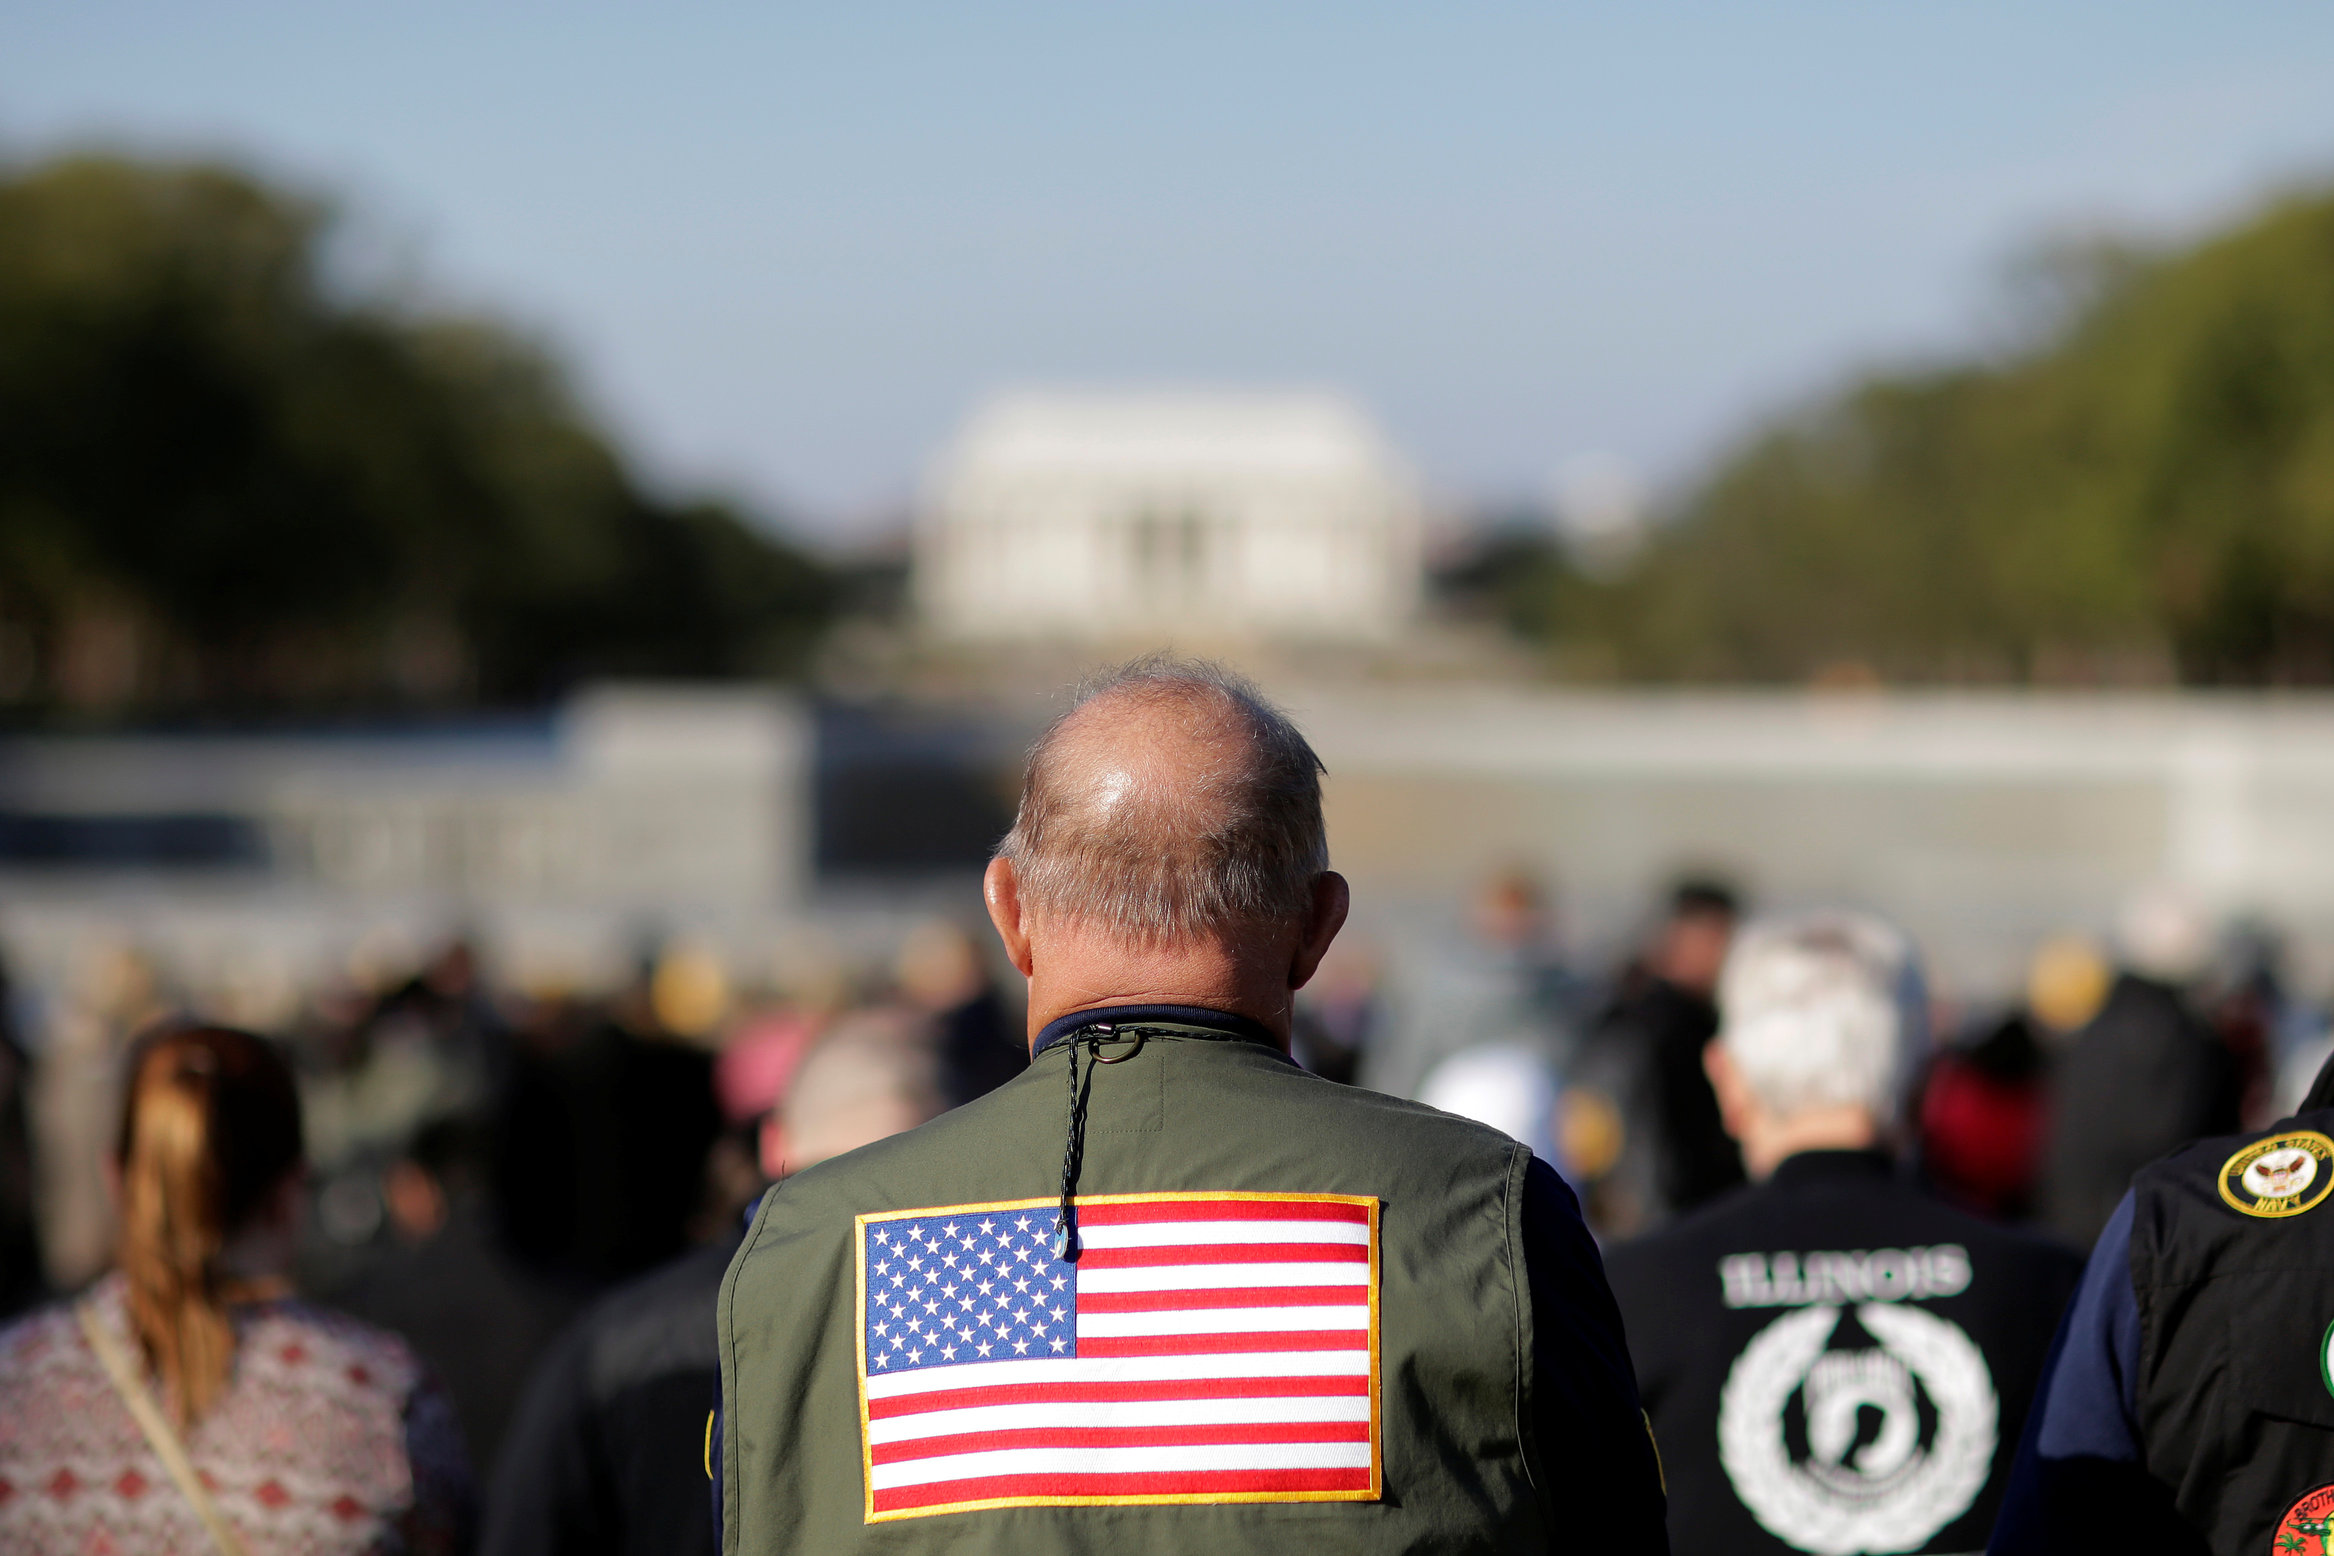 Veterans attend Memorial day services at the World War II Memorial in Washington, U.S., November 11, 2016. REUTERS/Joshua Roberts